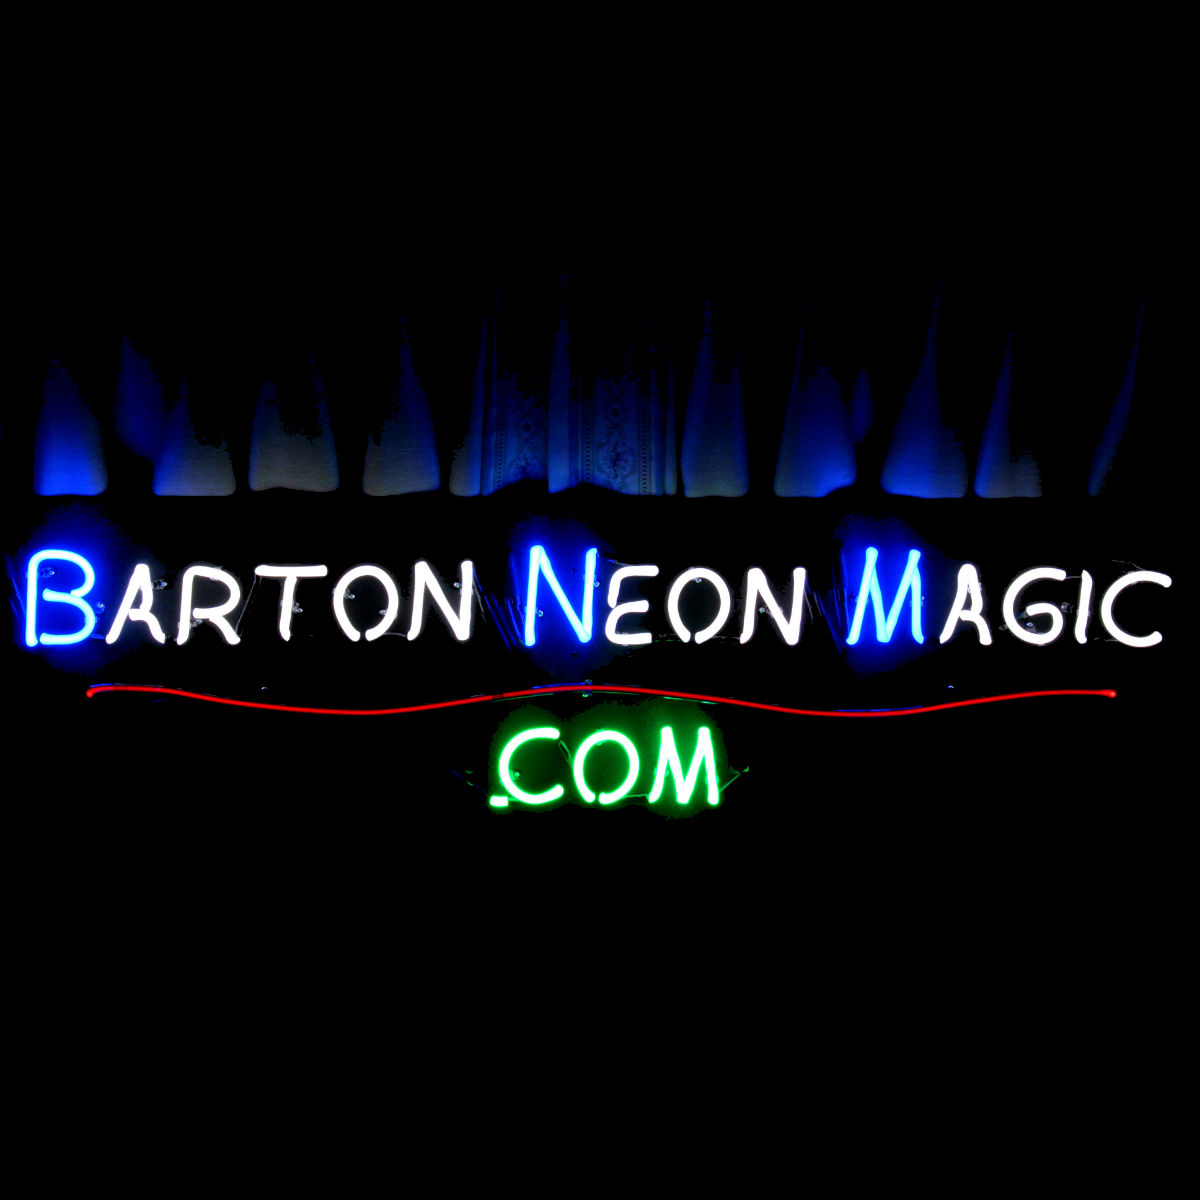 Designer Neon Artworks & Sculptures by John Barton - BartonNeonMagic.com